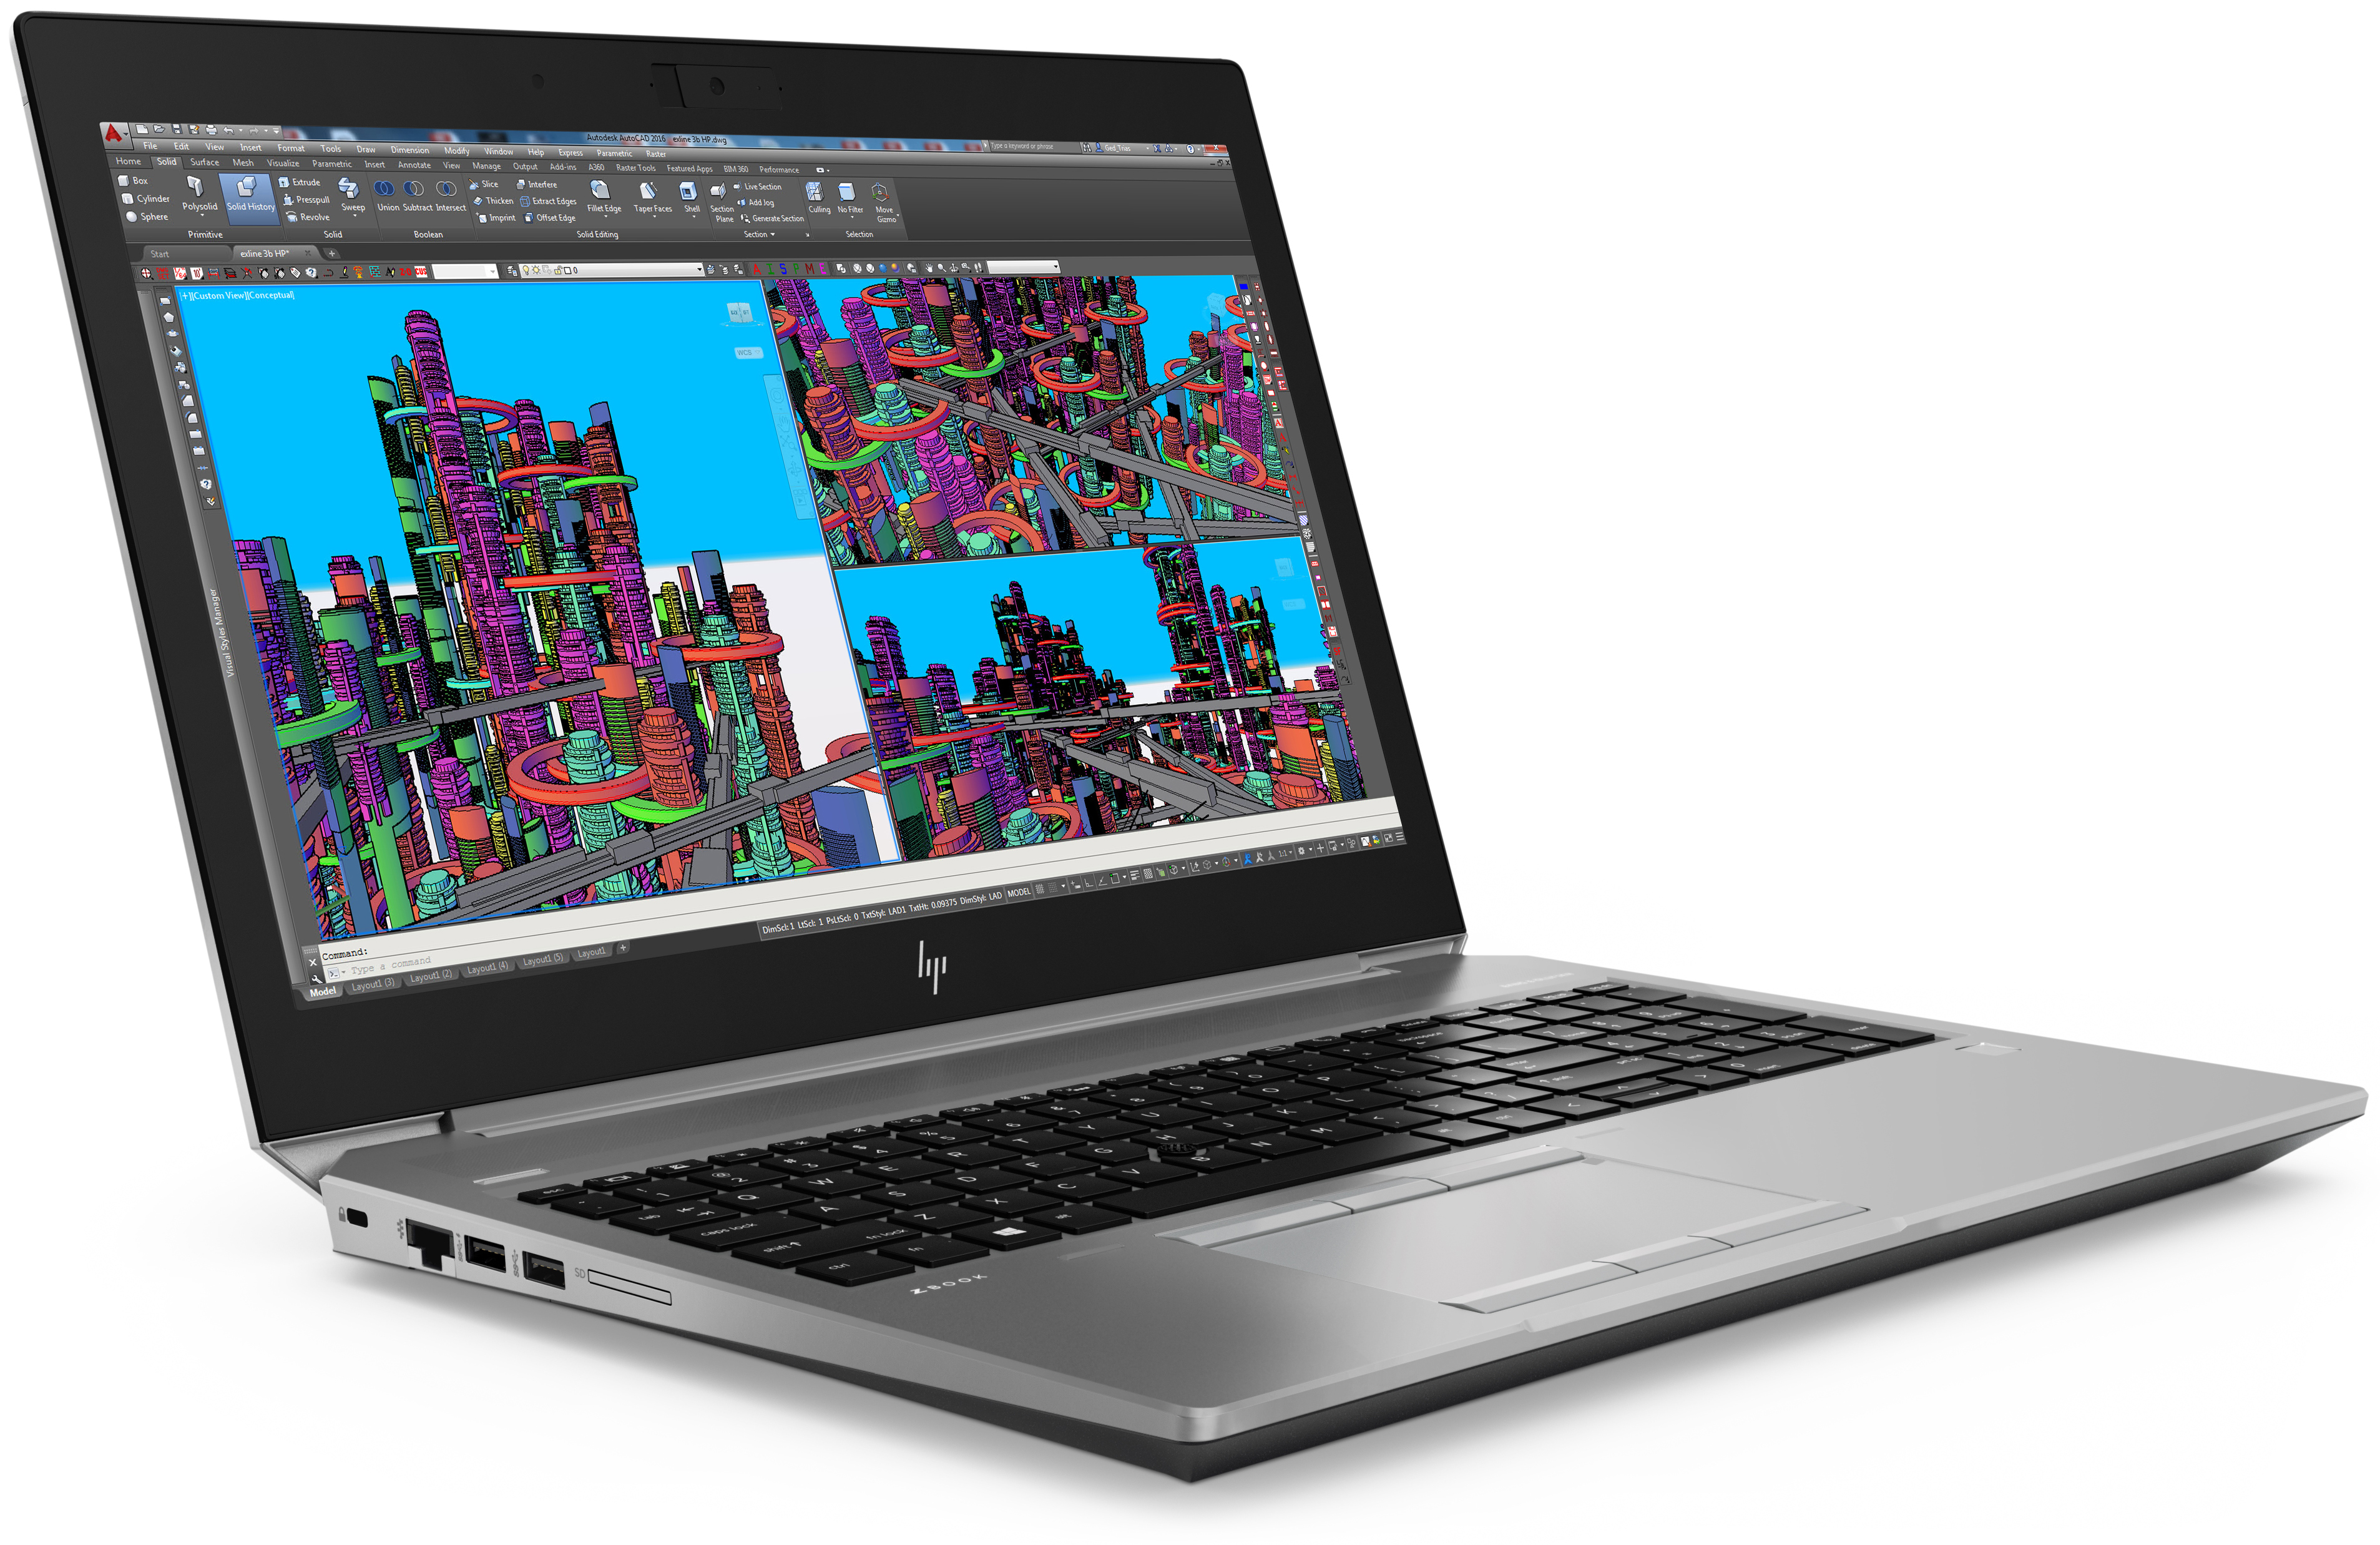 HP ZBook G5 Workstations: 15v, 15, and 17 - HP Spring 2018 Range